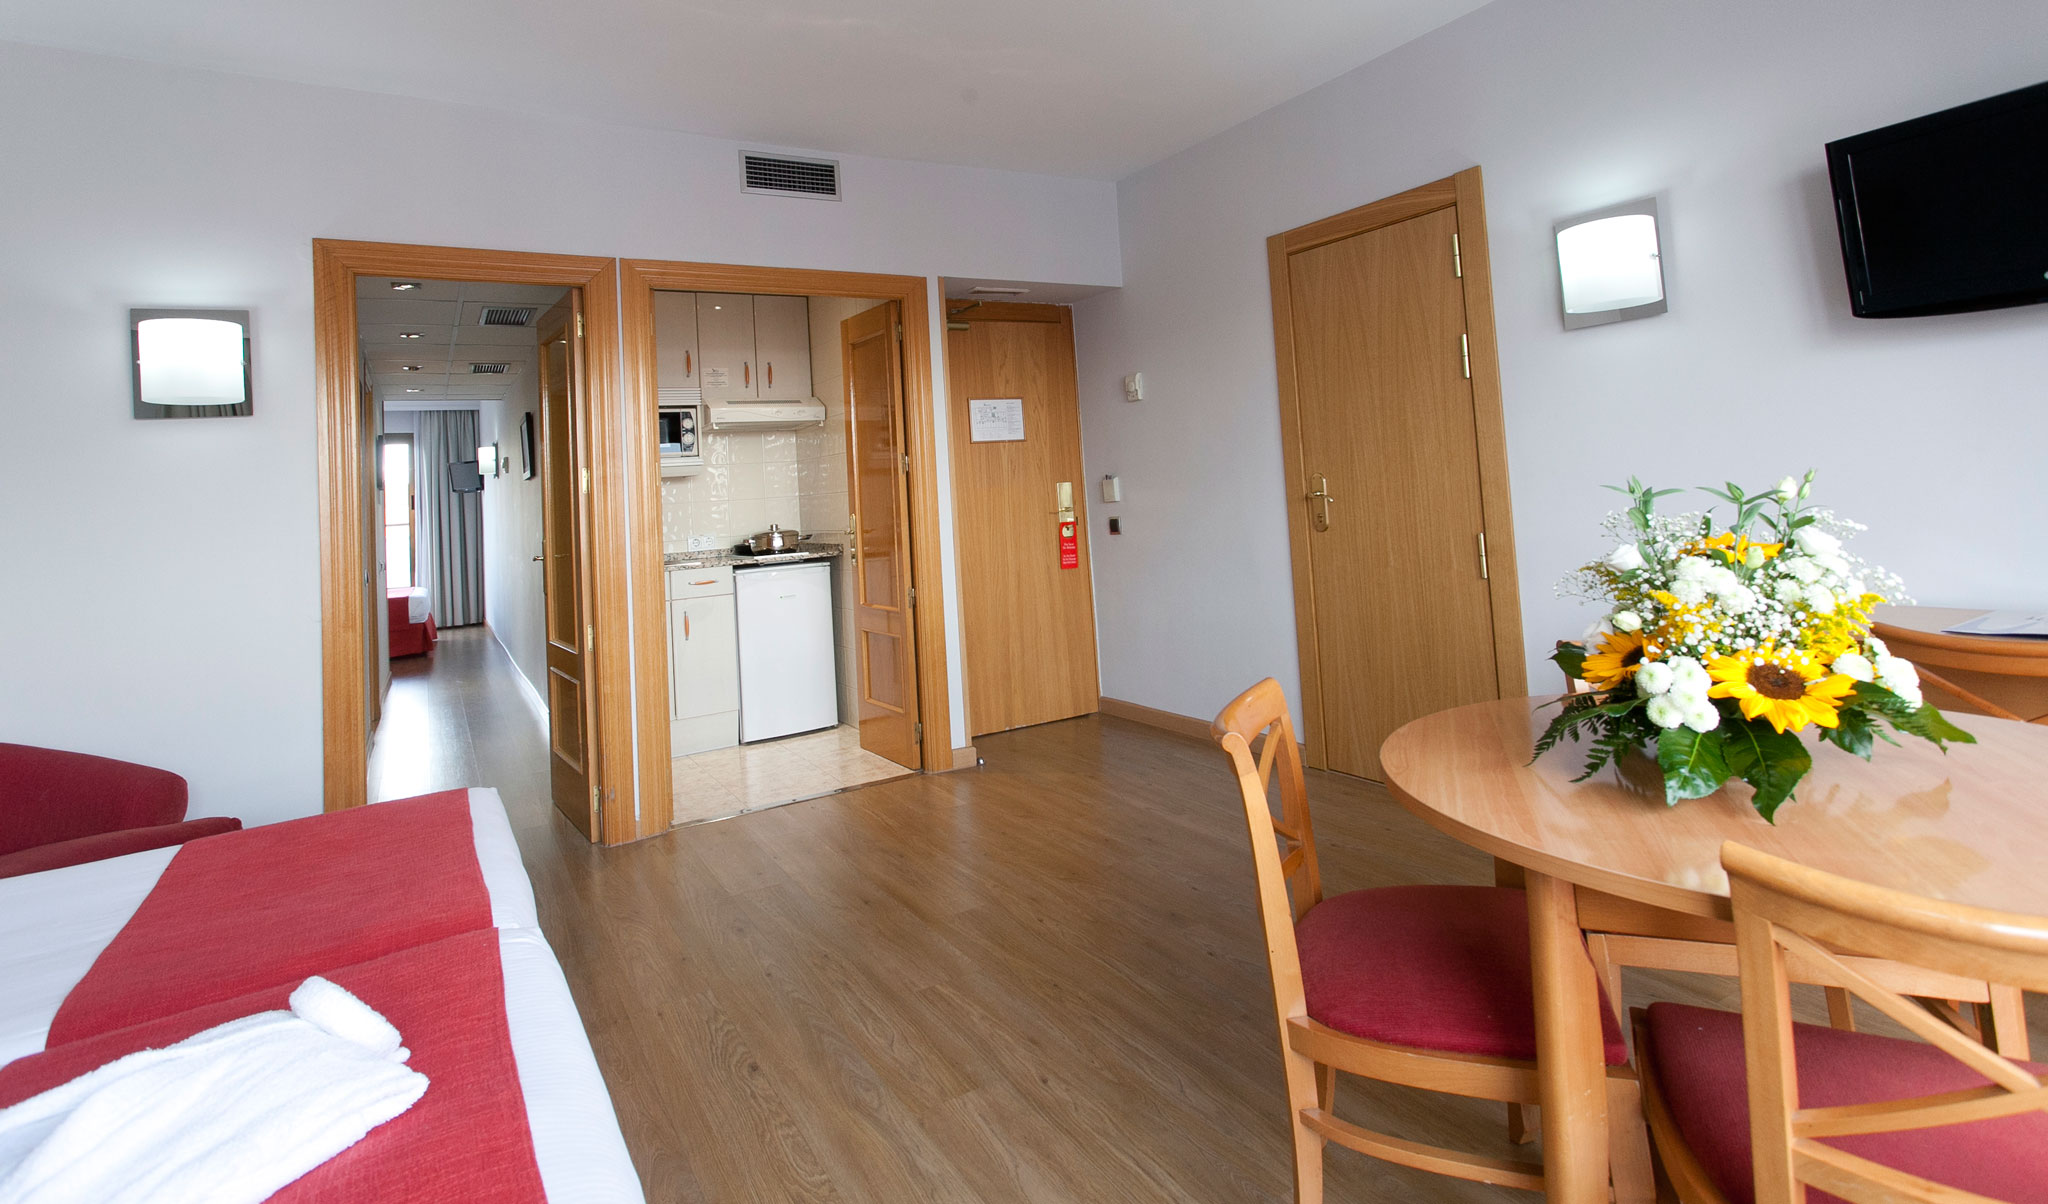 Aparto suites muralto madrid official site aparthotel in for Madrid appart hotel